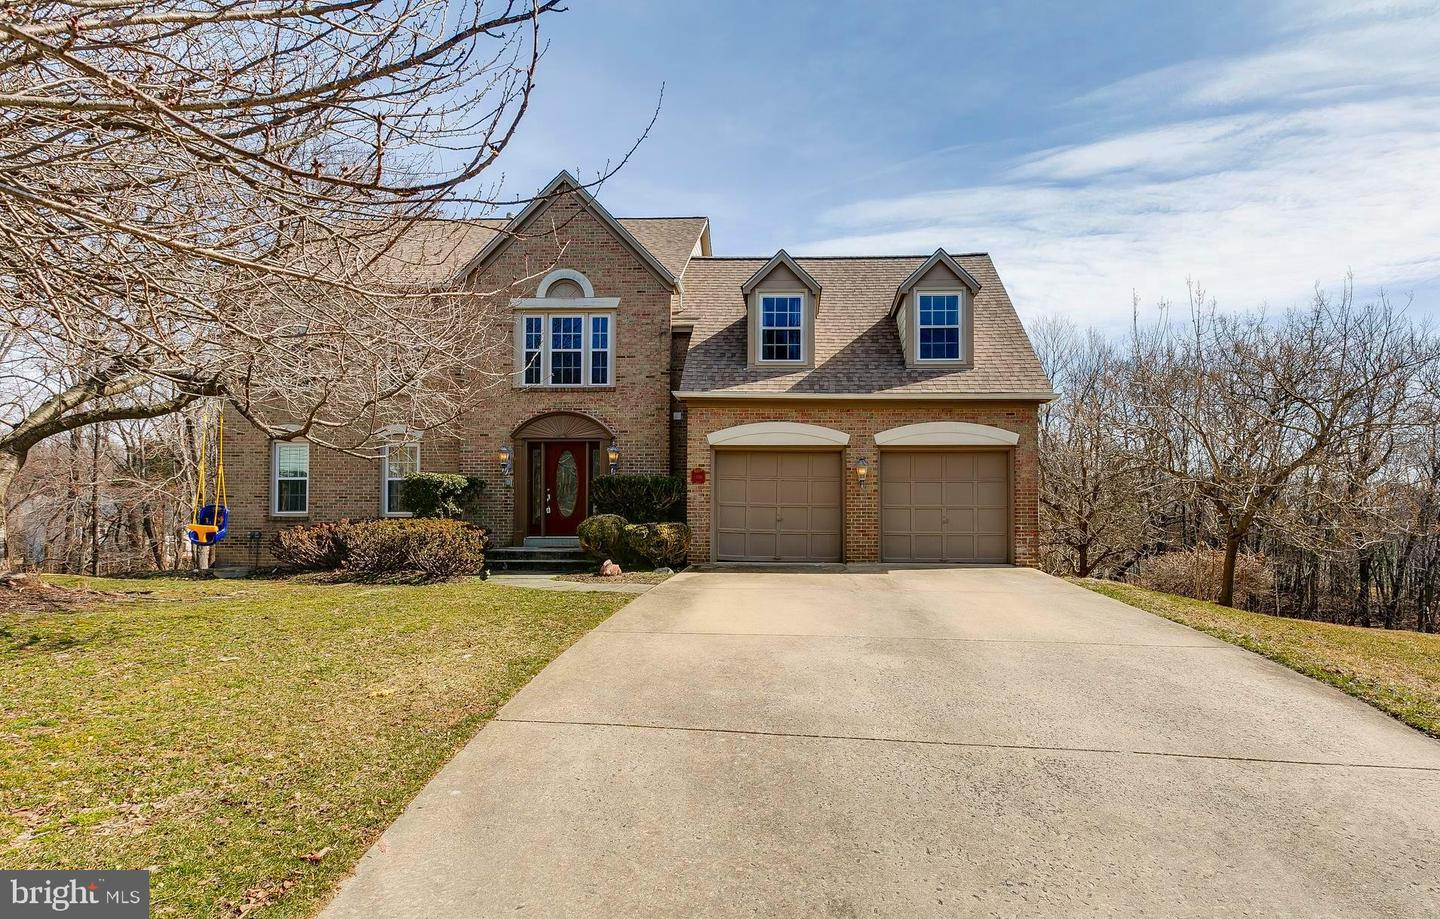 1401 SQUAW HILL LANE, SILVER SPRING, Maryland